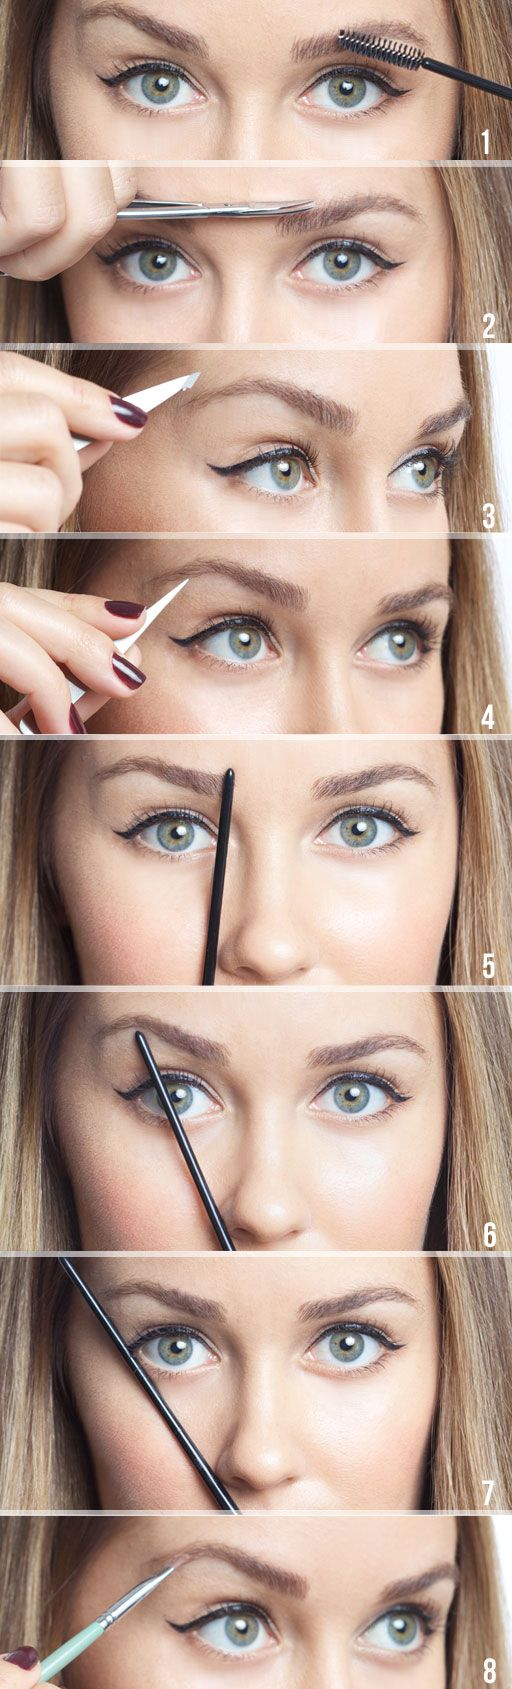 eyebrowsEyebrows Tips, Eye Brows, Makeup, Beautiful, Eyebrows Tutorials, Eyebrow Tutorial, Perfect Brows, Perfect Eyebrows, Lauren Conrad